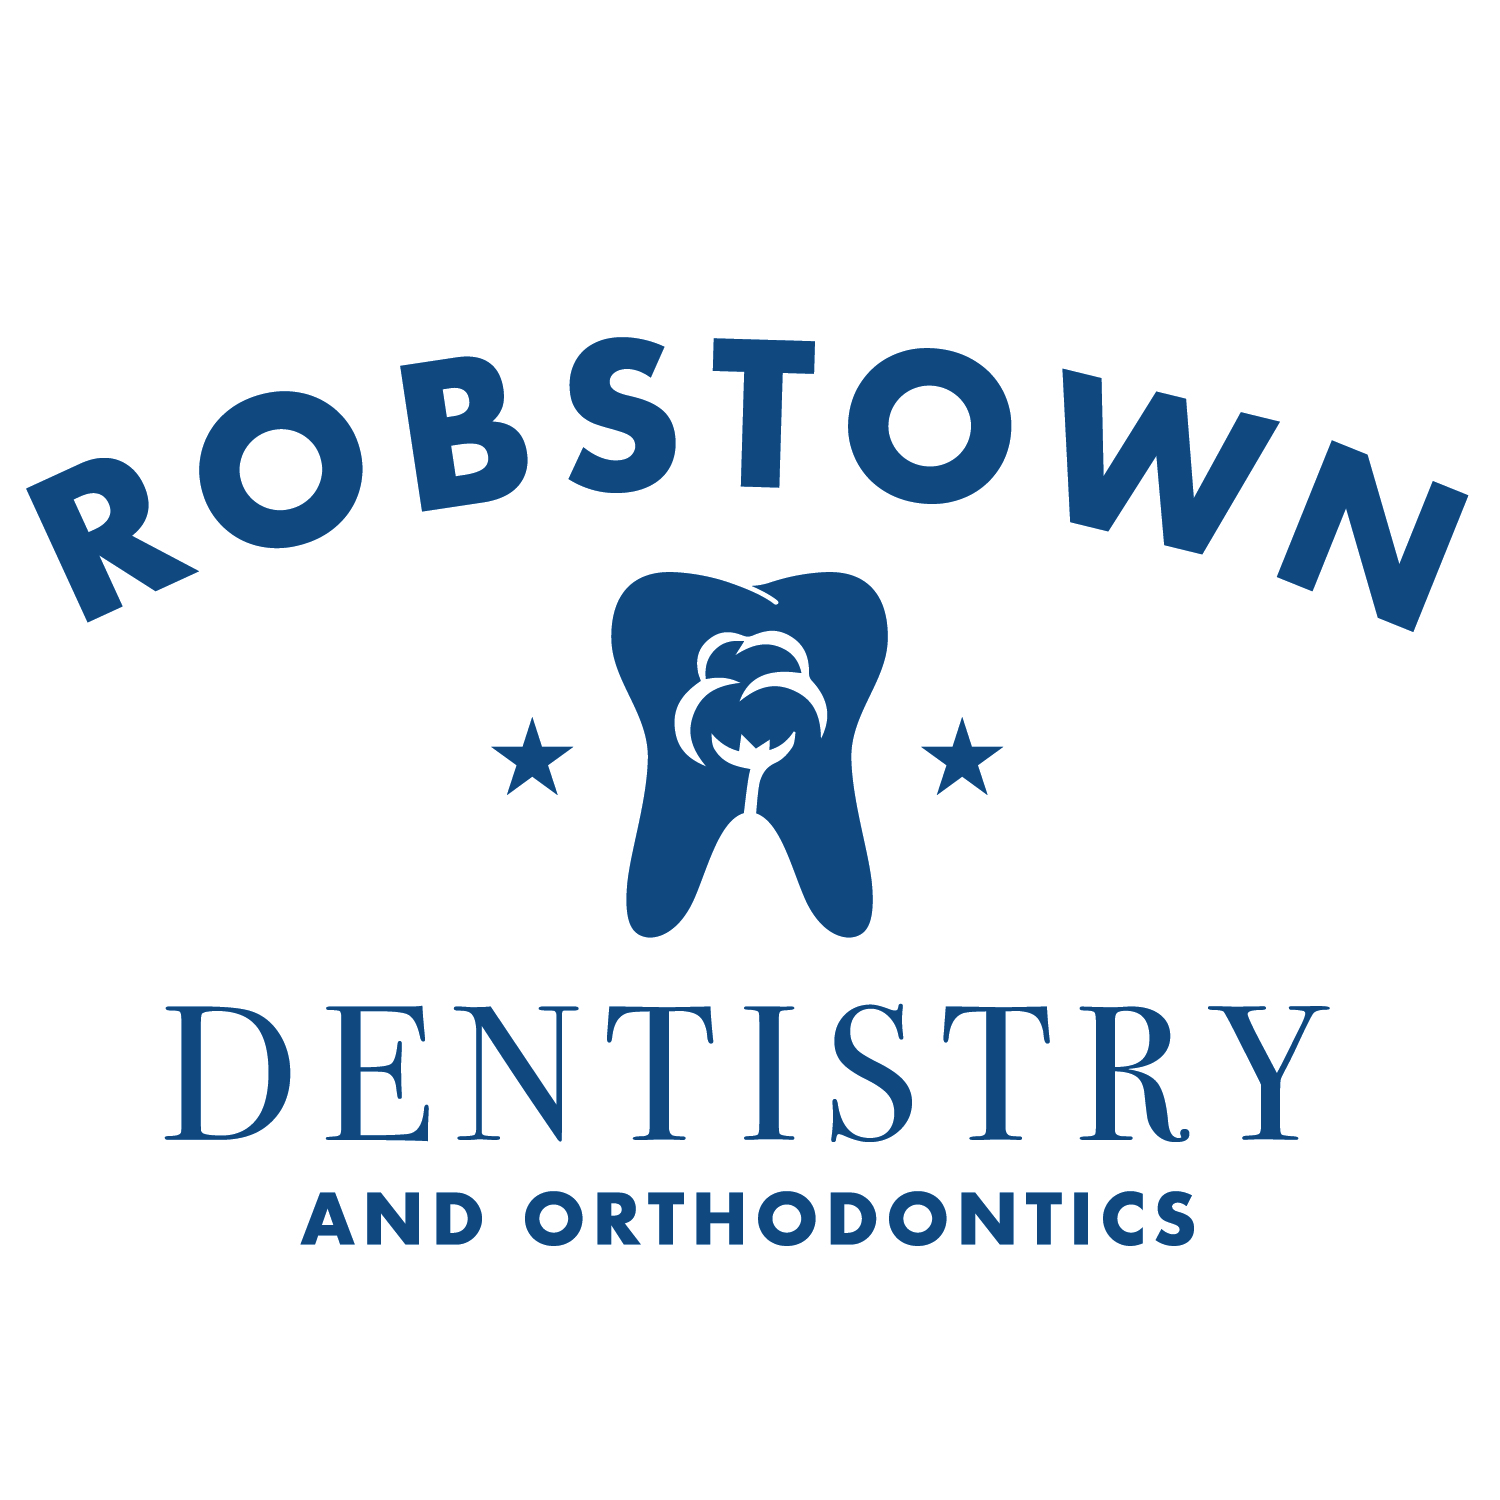 Robstown Dentistry & Orthodontics Logo Final_Blue